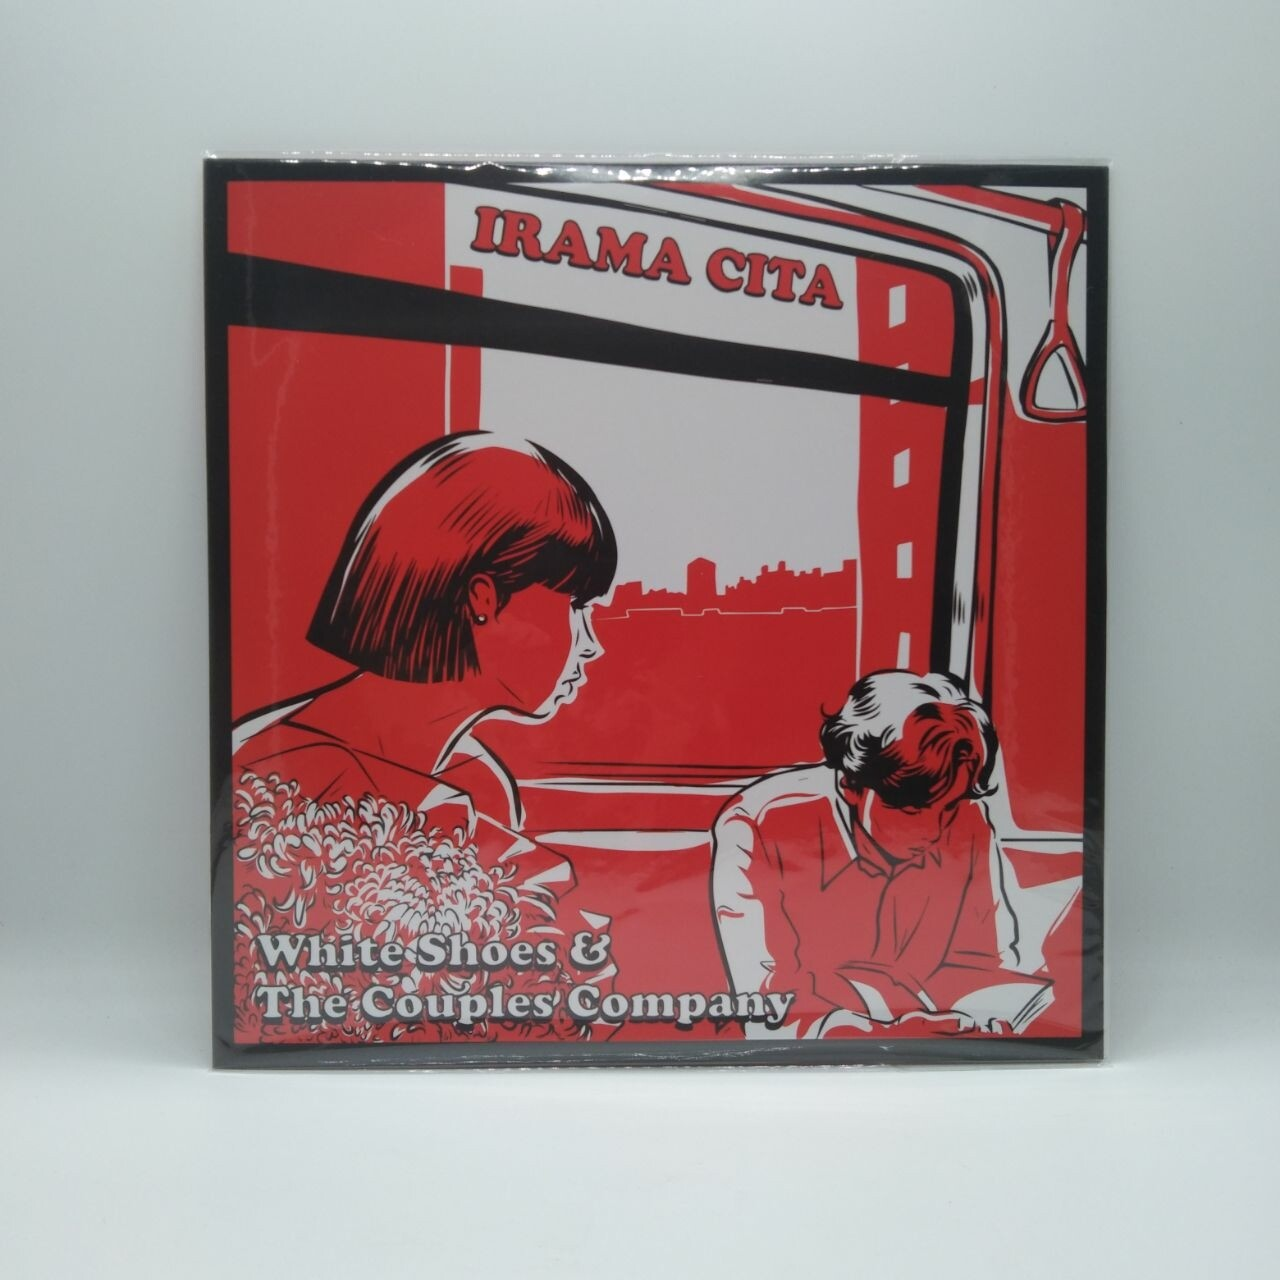 WHITE SHOES AND THE COUPLES COMPANY -IRAMA CITA- 10 INCH